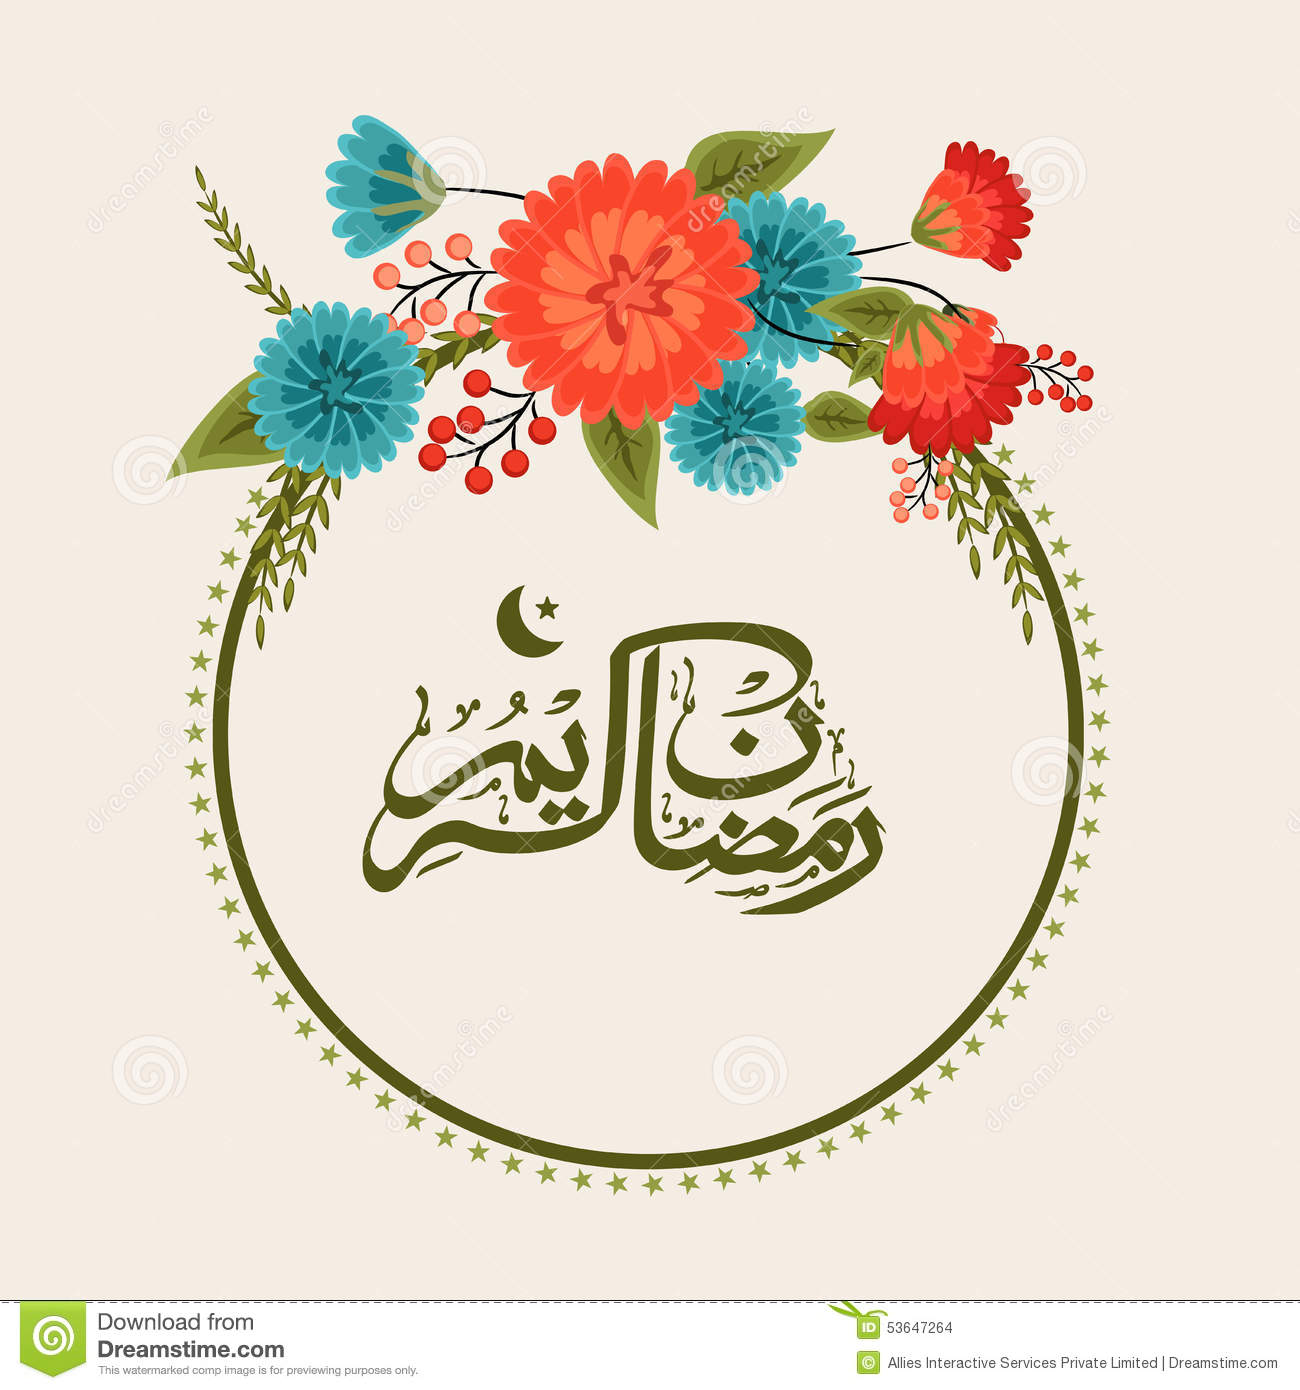 Arabic text in floral frame for ramadan kareem celebration